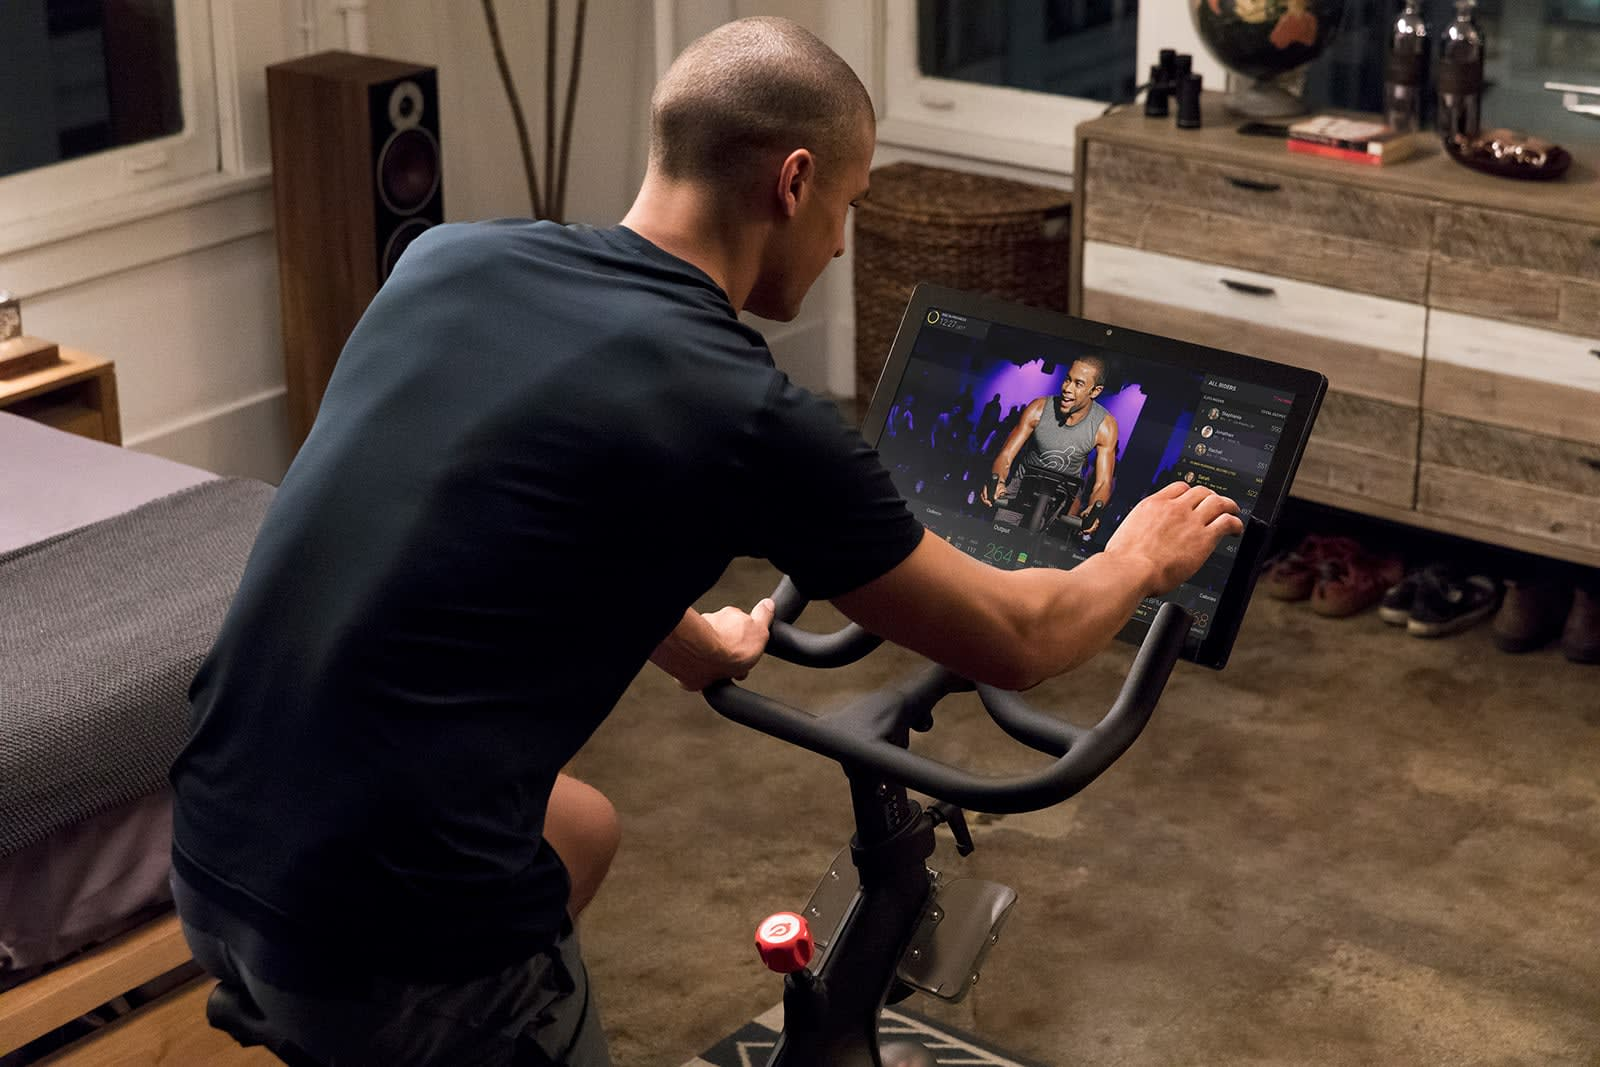 0a732b233a183 A Peloton bike motivated me more than any gym membership could